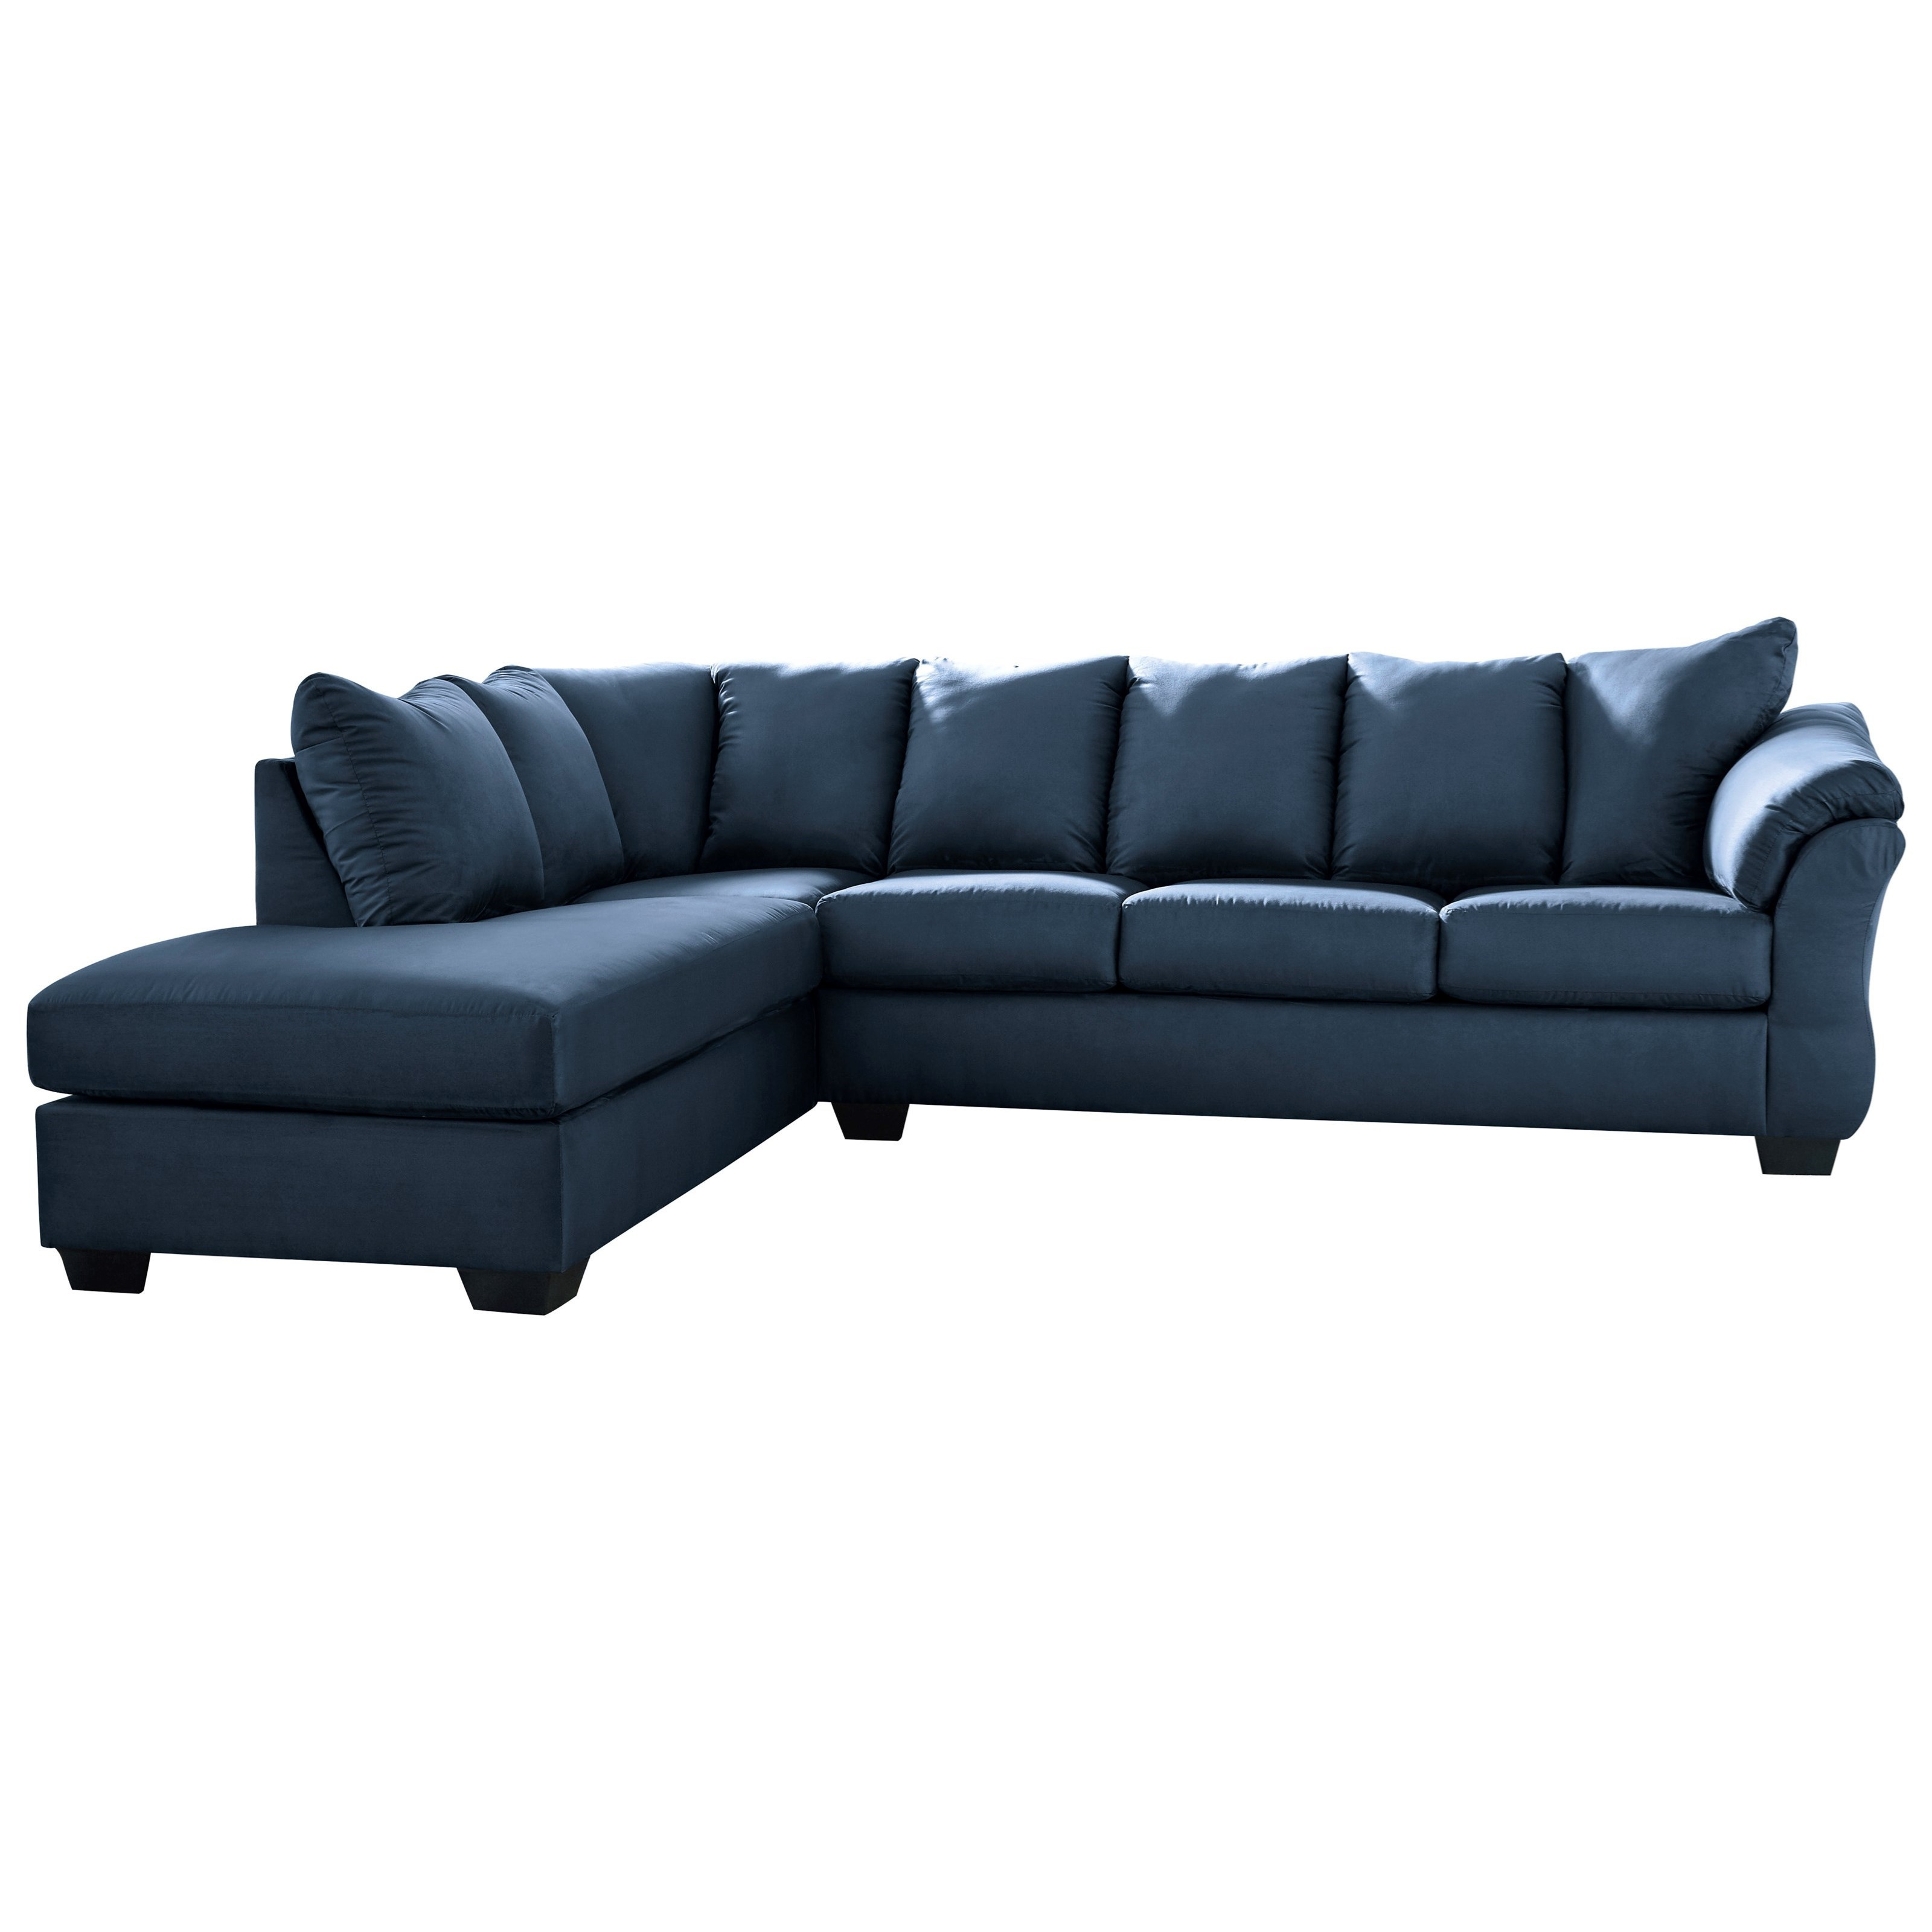 benchcraft darcy blue contemporary 2 piece sectional sofa with left chaise virginia. Black Bedroom Furniture Sets. Home Design Ideas